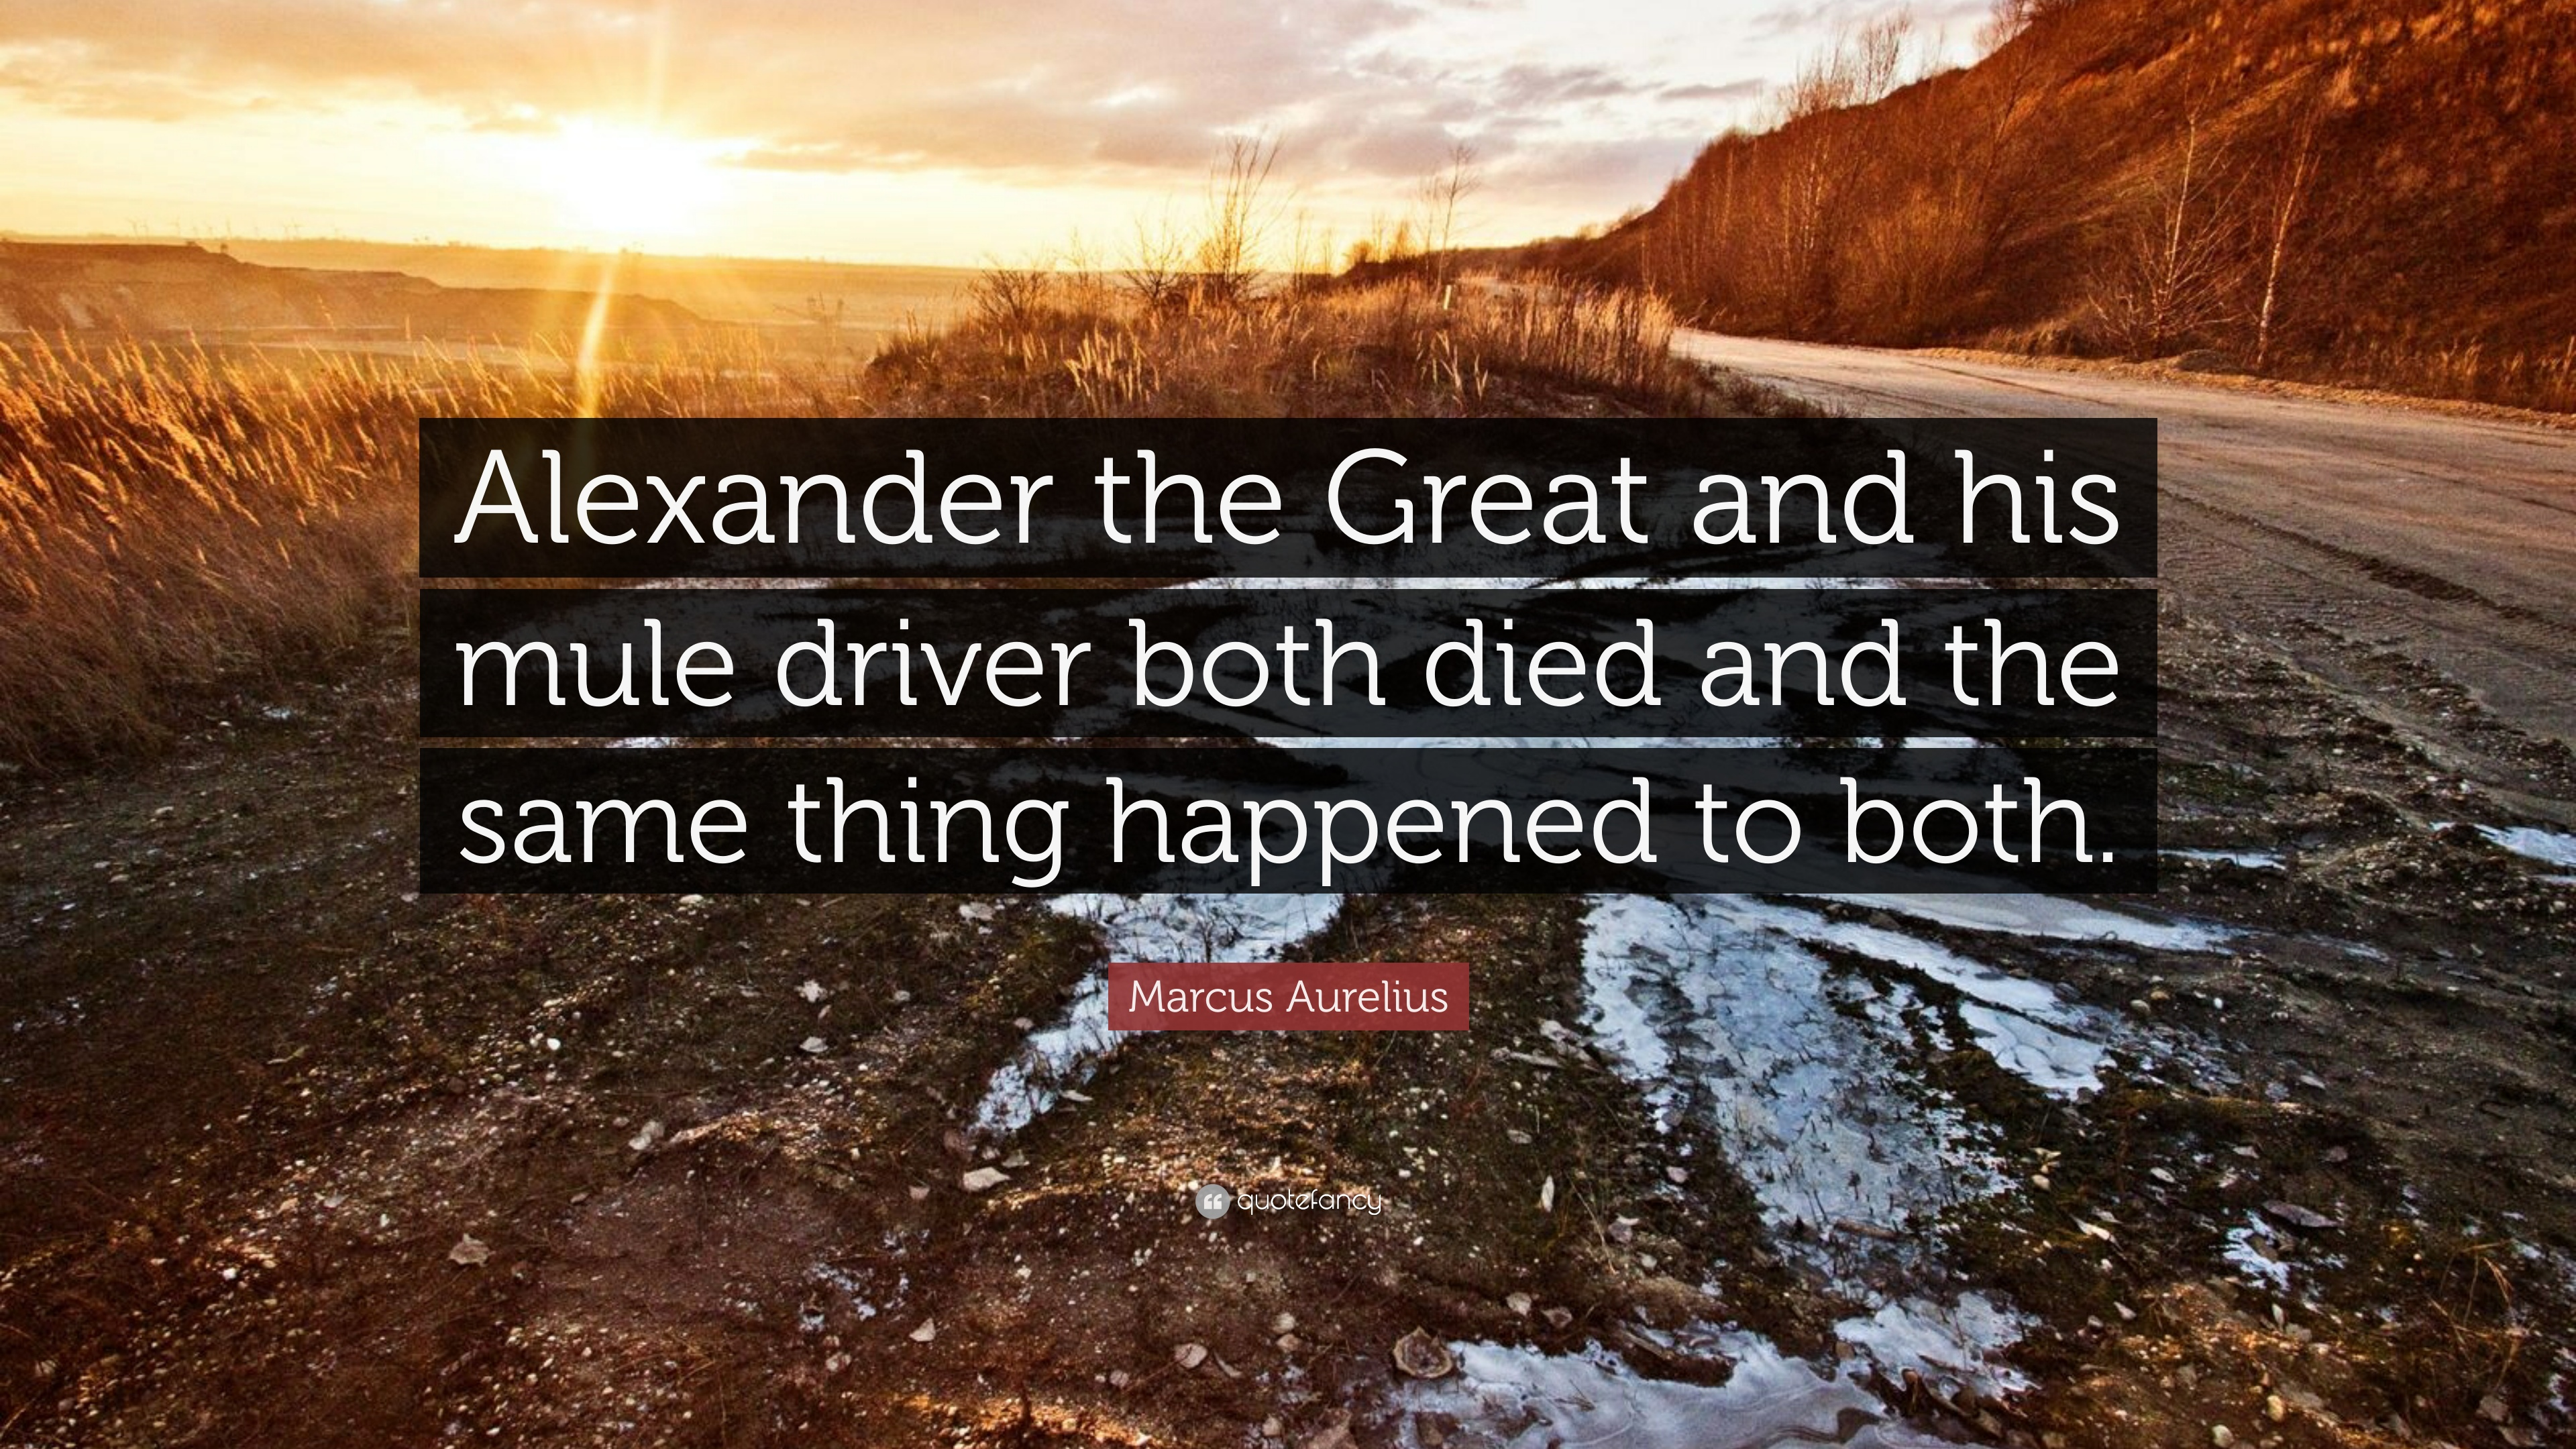 Does alexander the great deserve his